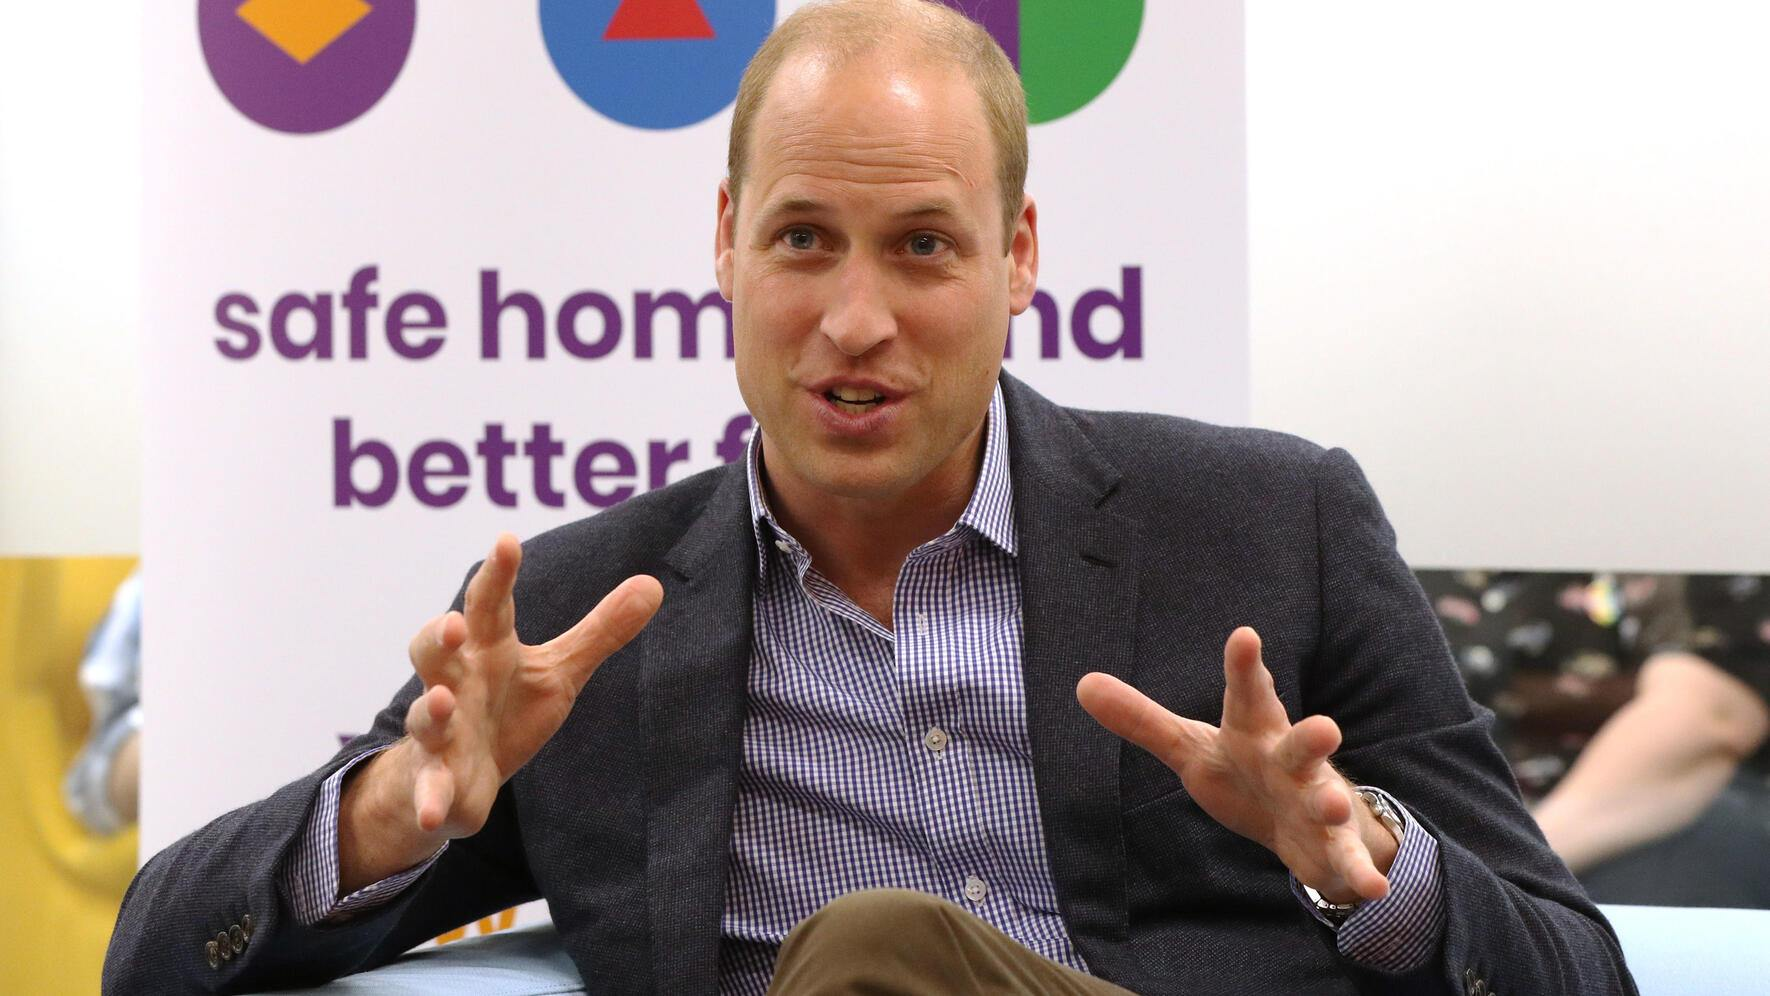 LONDON, ENGLAND - JUNE 26: Prince William, Duke of Cambridge speaks to former and current service users during a visit to the Albert Kennedy Trust to learn about the issue of LGBTQ youth homelessness and the unique approach that the organisation is taking to tackling the problem on June 26, 2019 in London, England. (Photo by Jonathan Brady - WPA Pool/Getty Images)